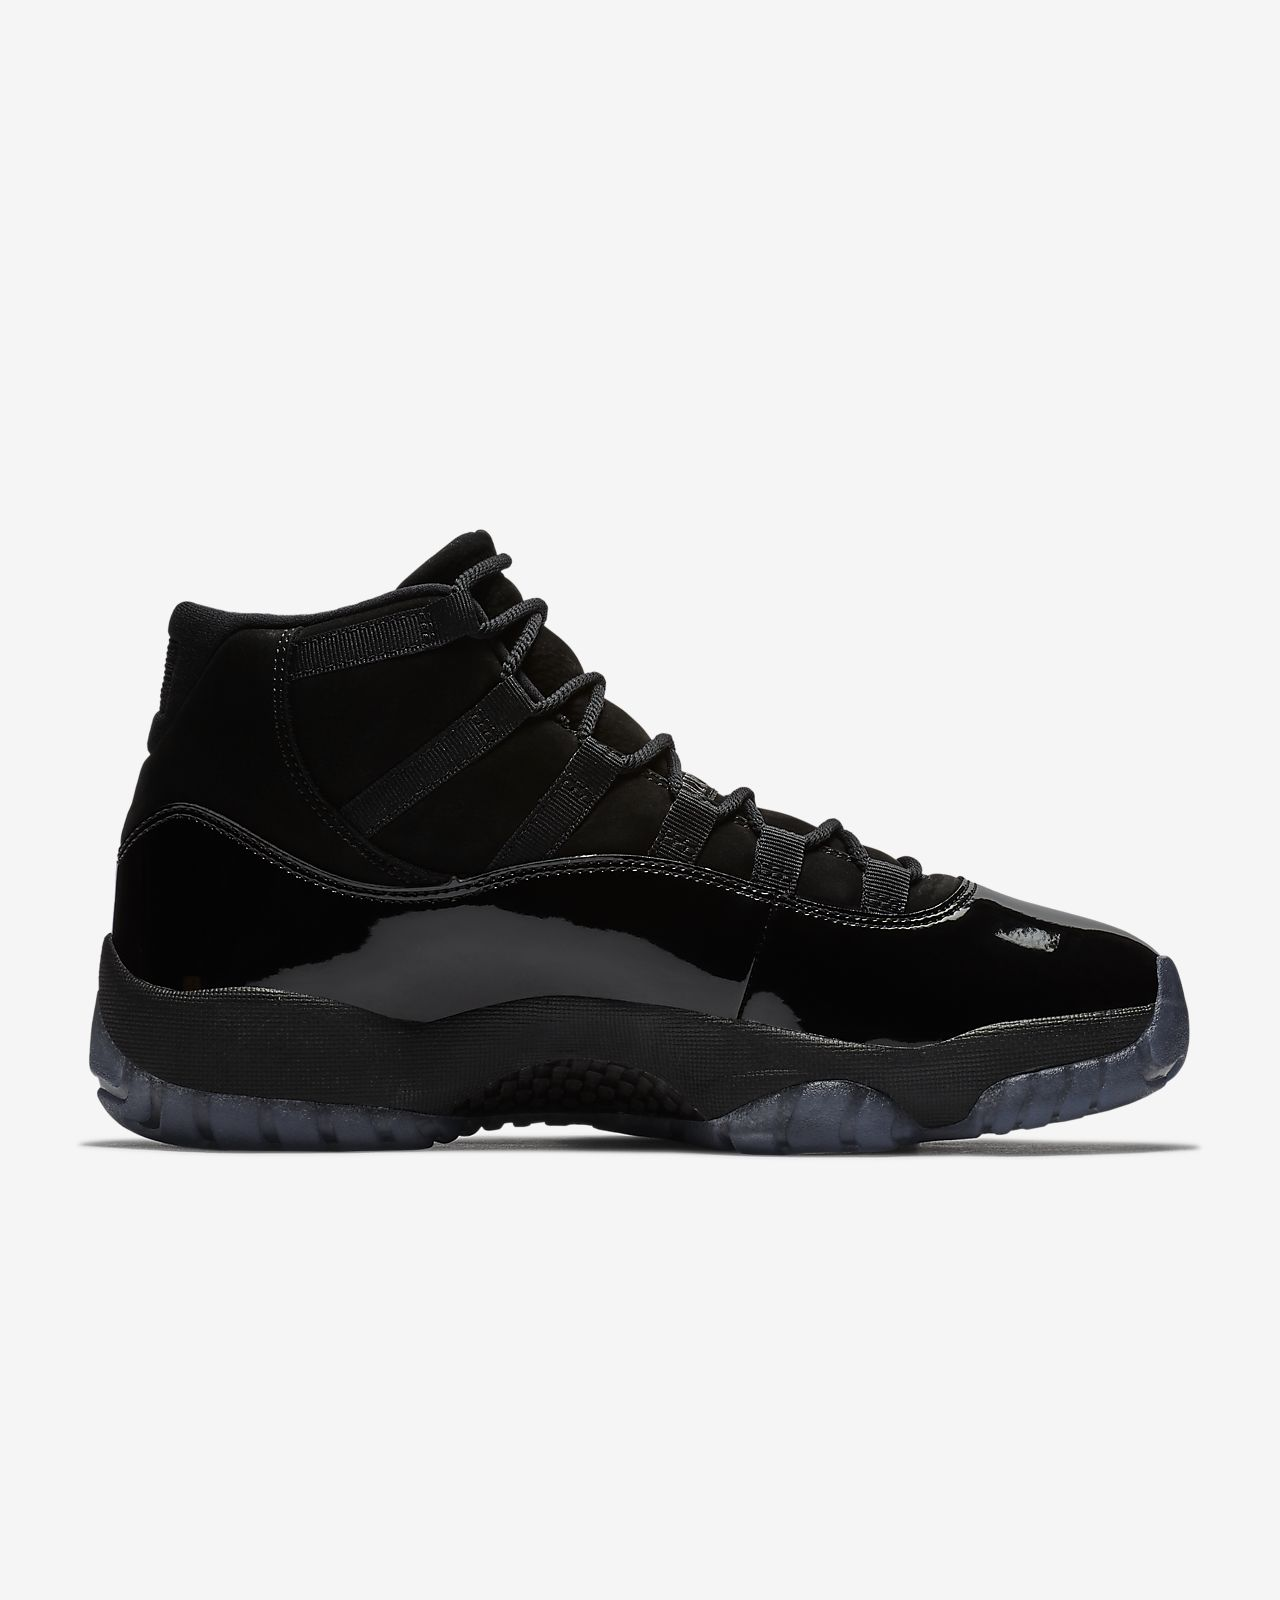 air jordan space jam 11 men nz